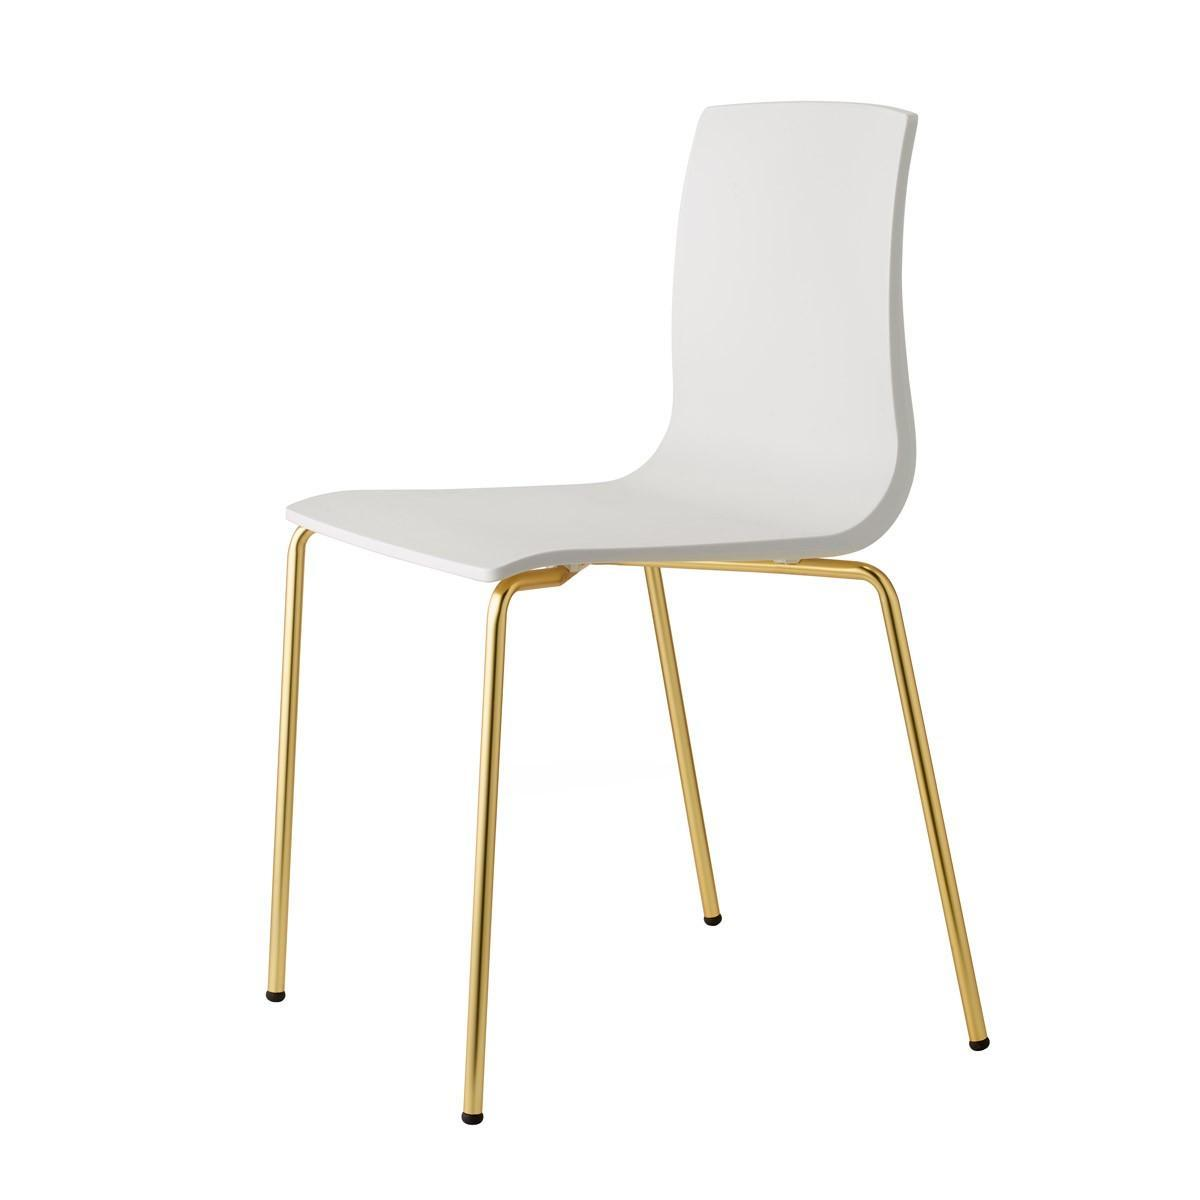 Стул пластиковый Alice Chair satin brass effect finish